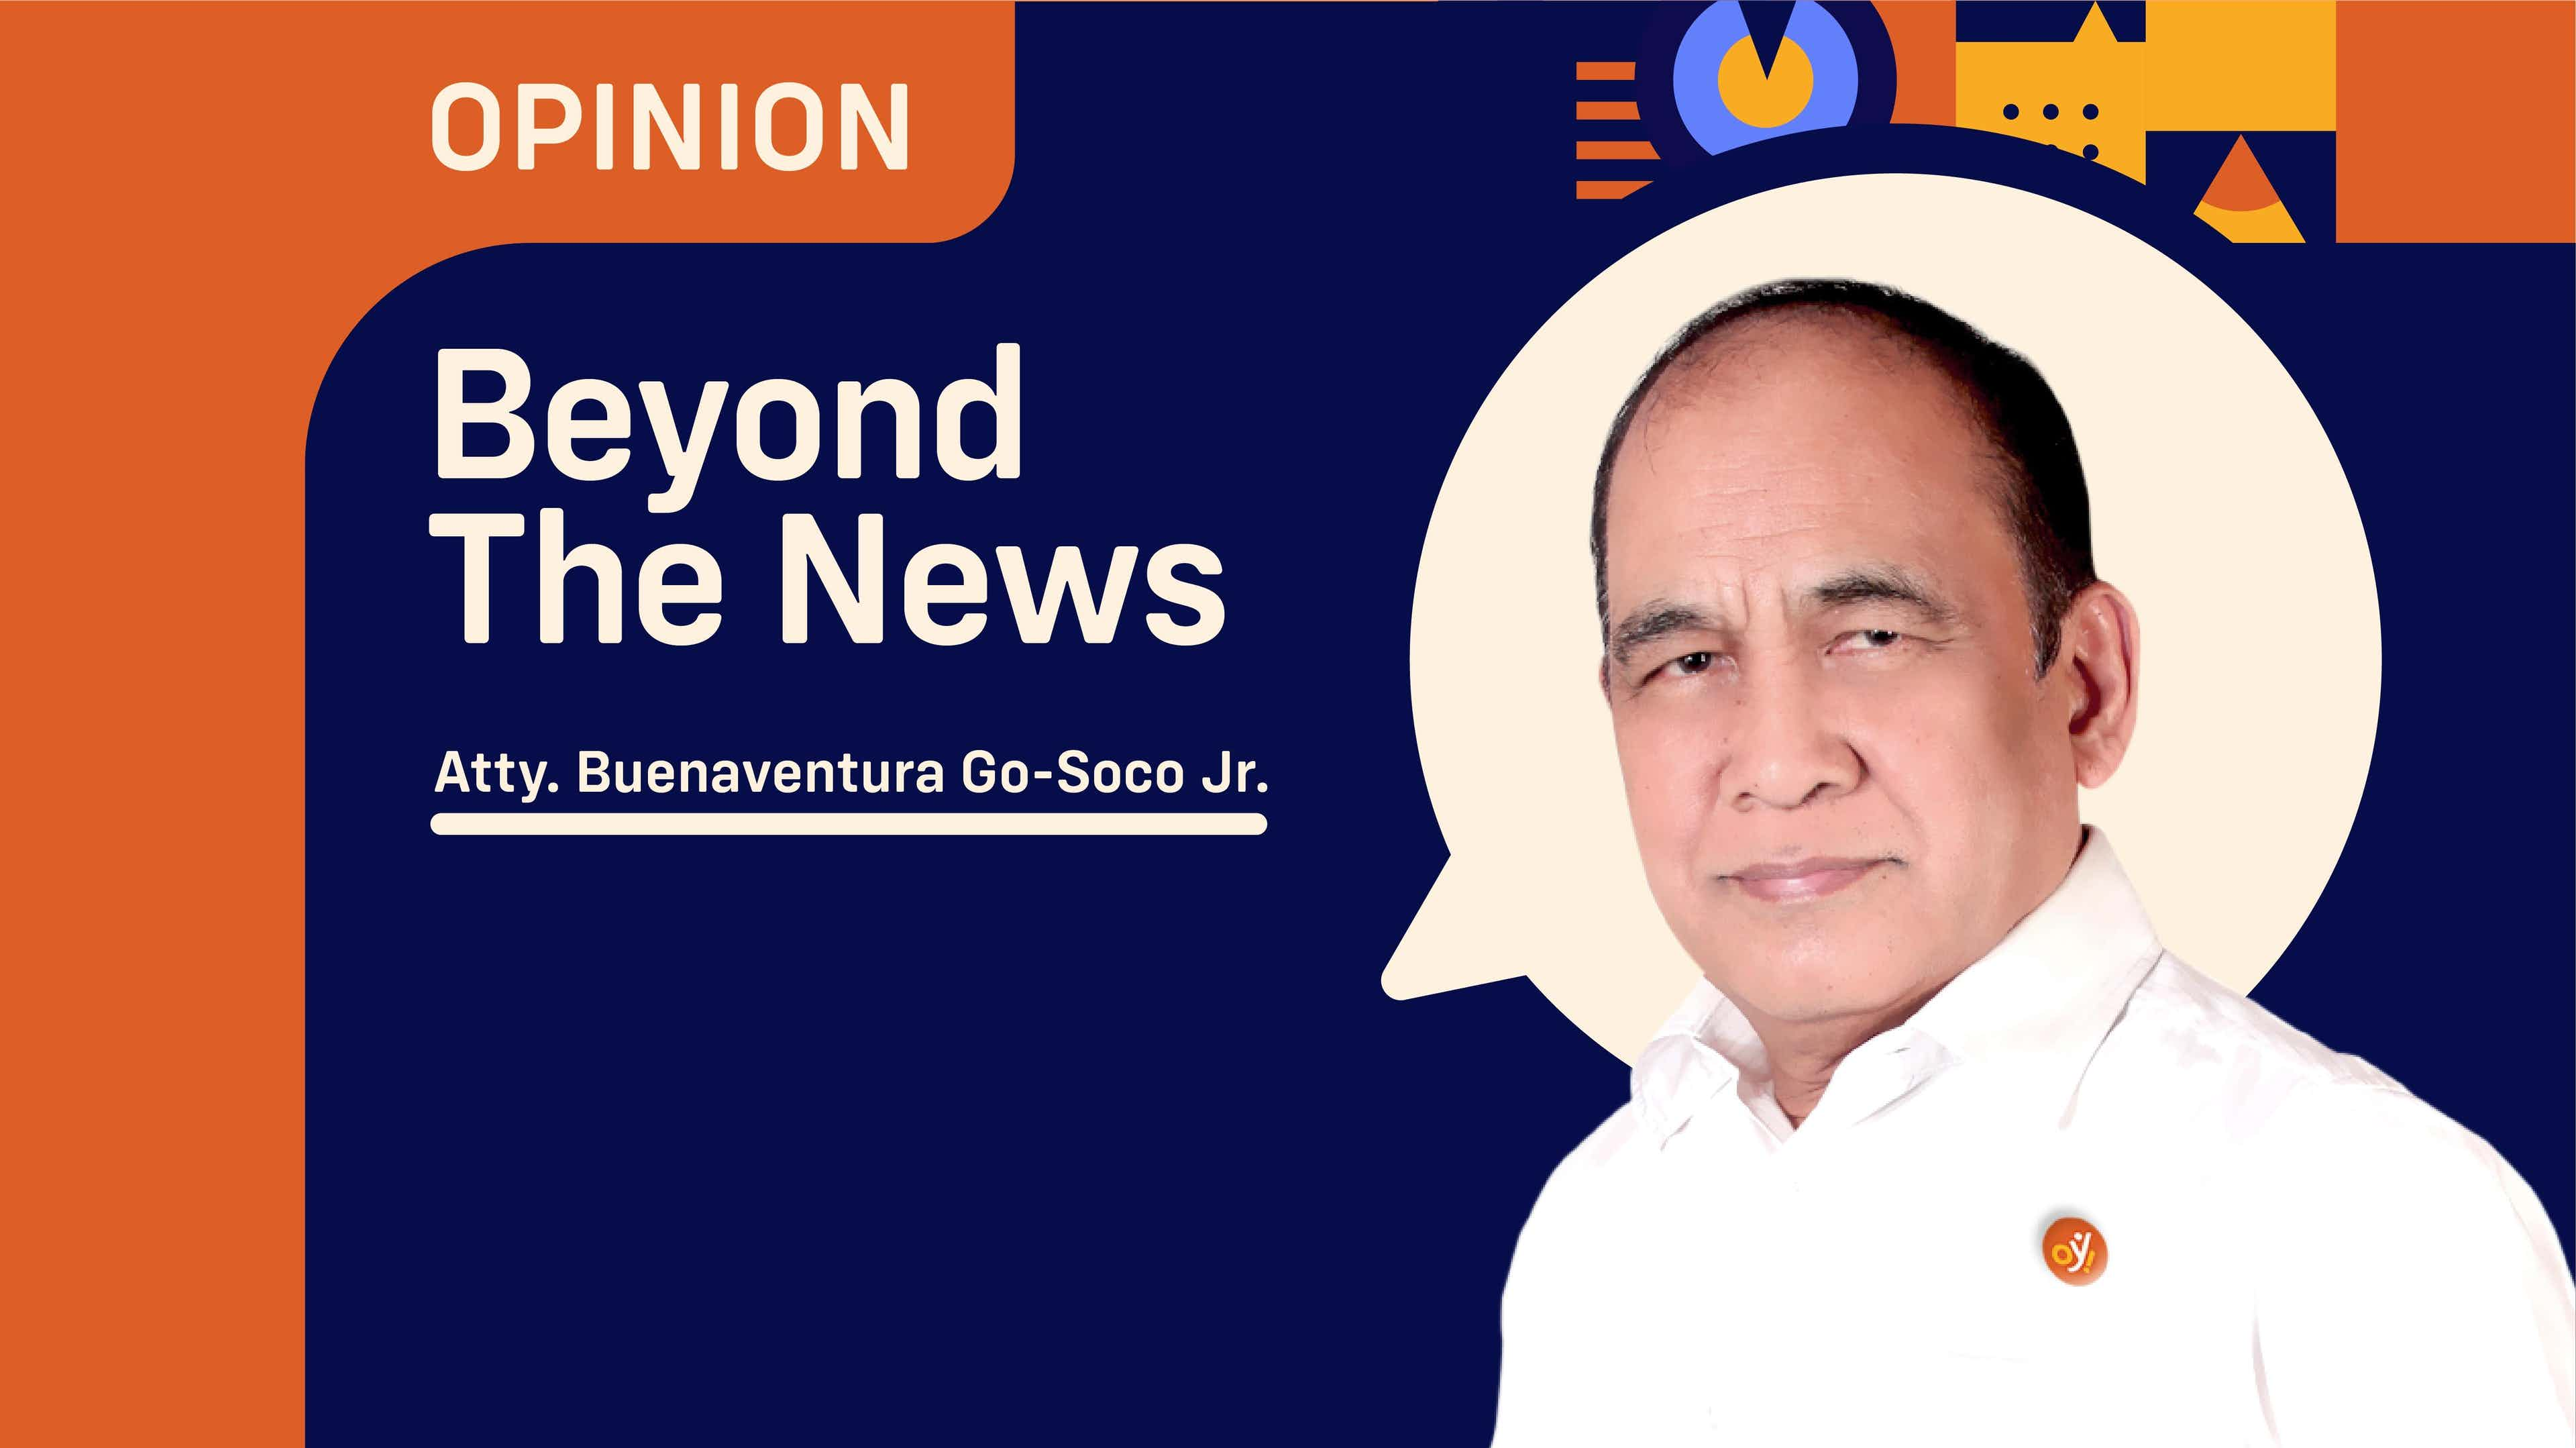 Beyond the News by Atty. Junie Go-Soco